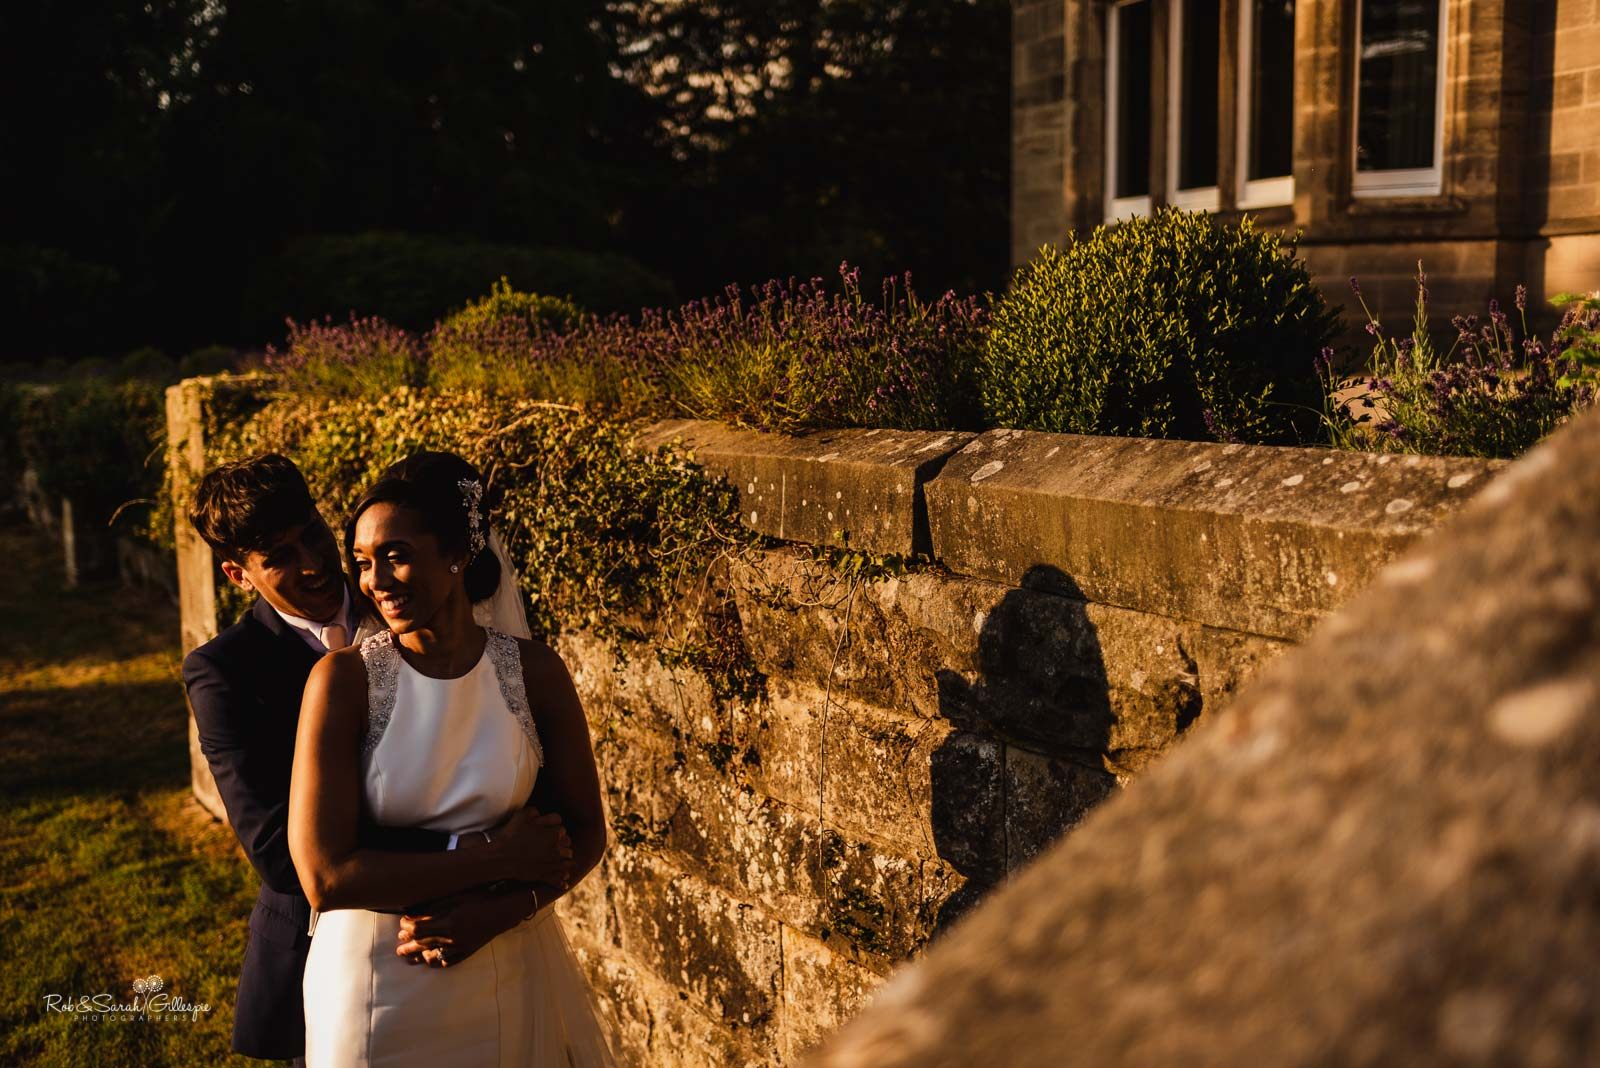 Relaxed wedding portraits at Hampton Manor by Rob & Sarah Gillespie Photographers